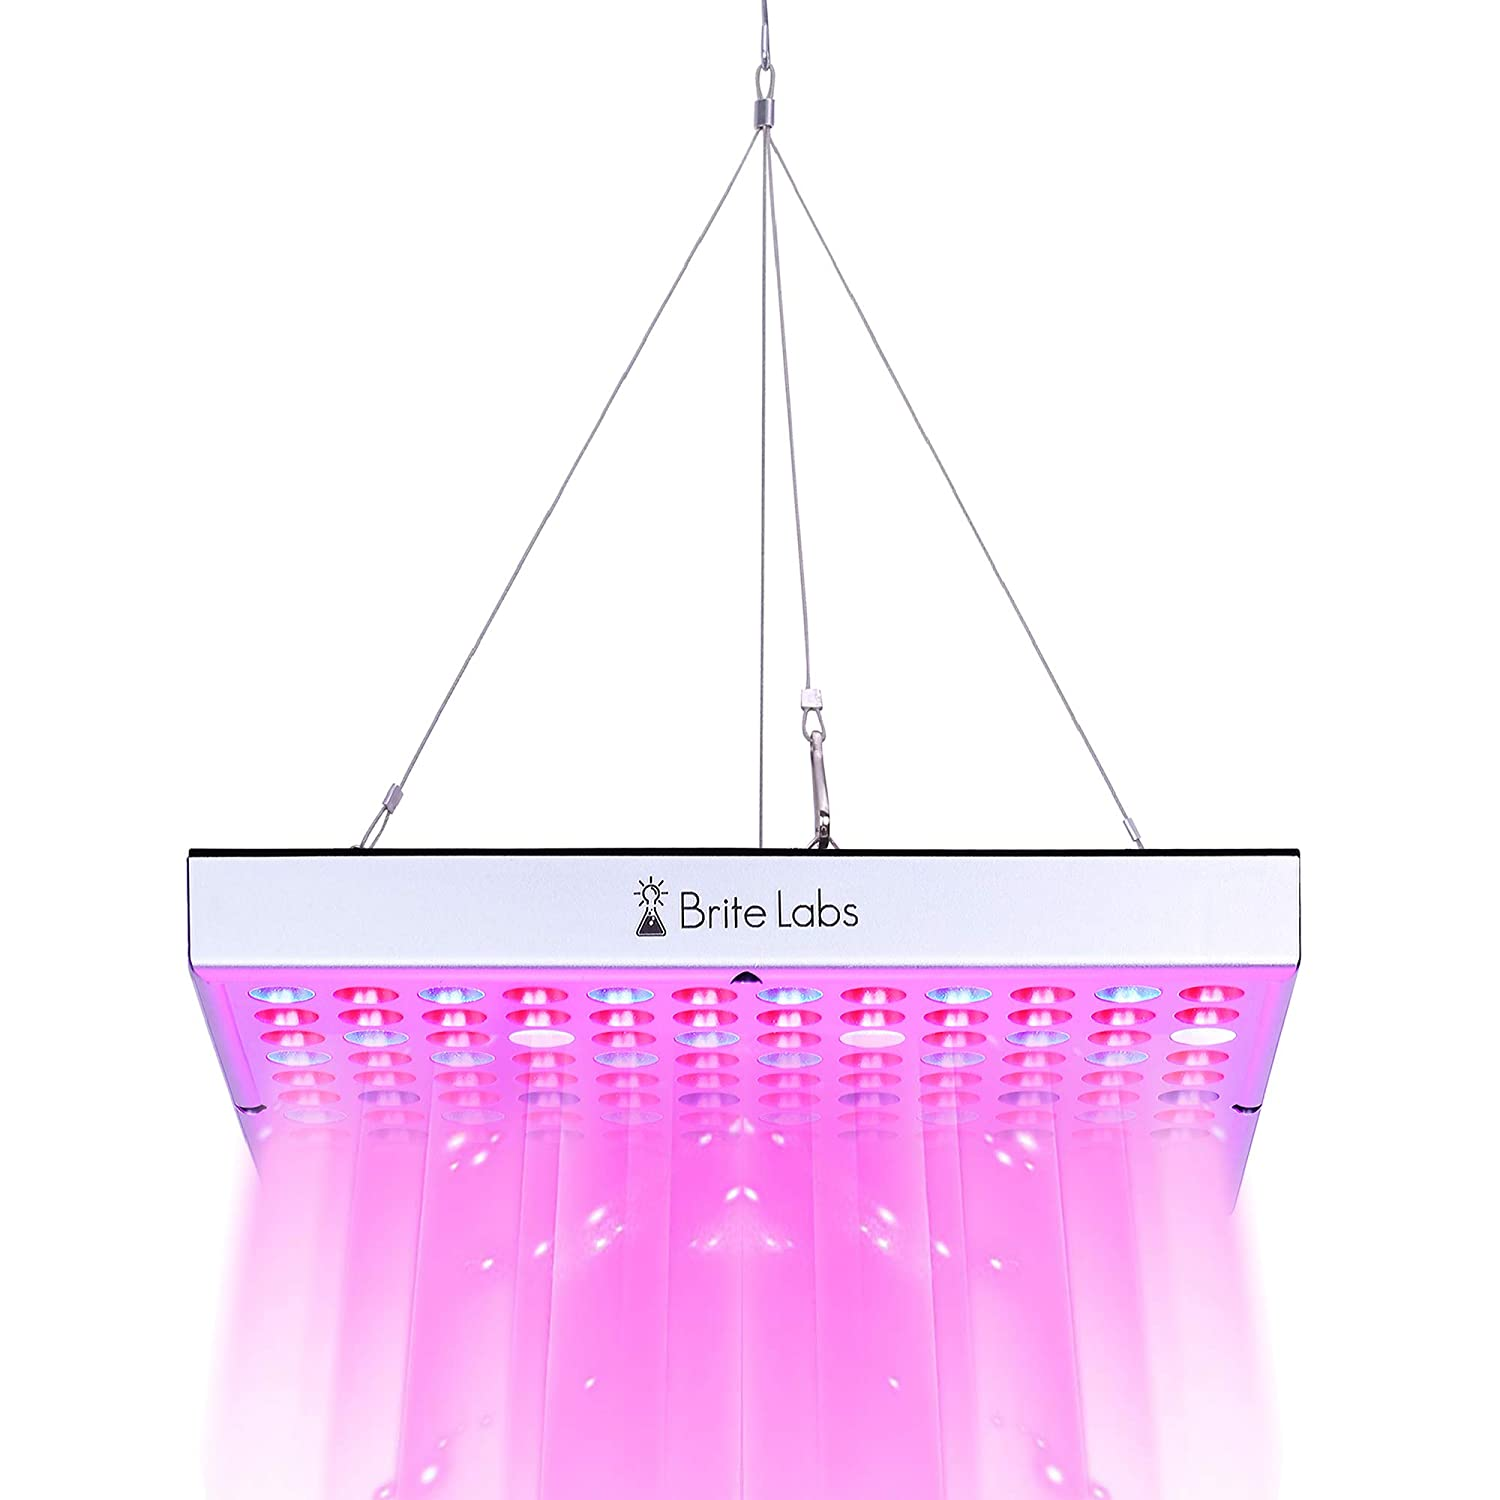 Brite Labs LED Grow Lights for Indoor Plants, 45W Full Spectrum Bulbs, Hanging Plant Grow Light Panel for Seedlings and Seed Starting, LED Growing Lamp Hanging Kit Fixtures and Accessories Included